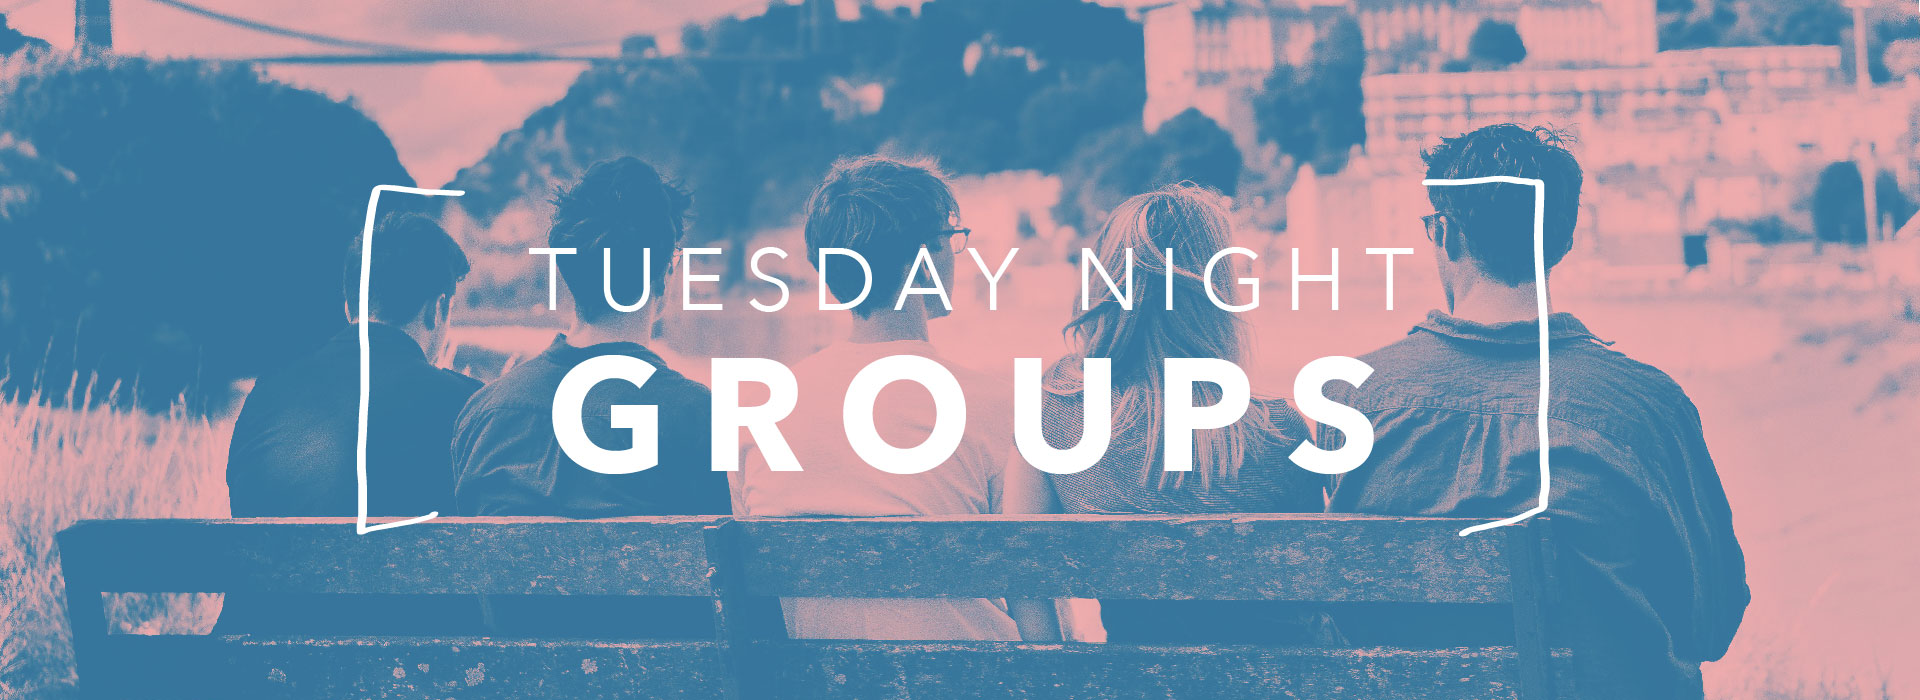 tuesday night groups-01